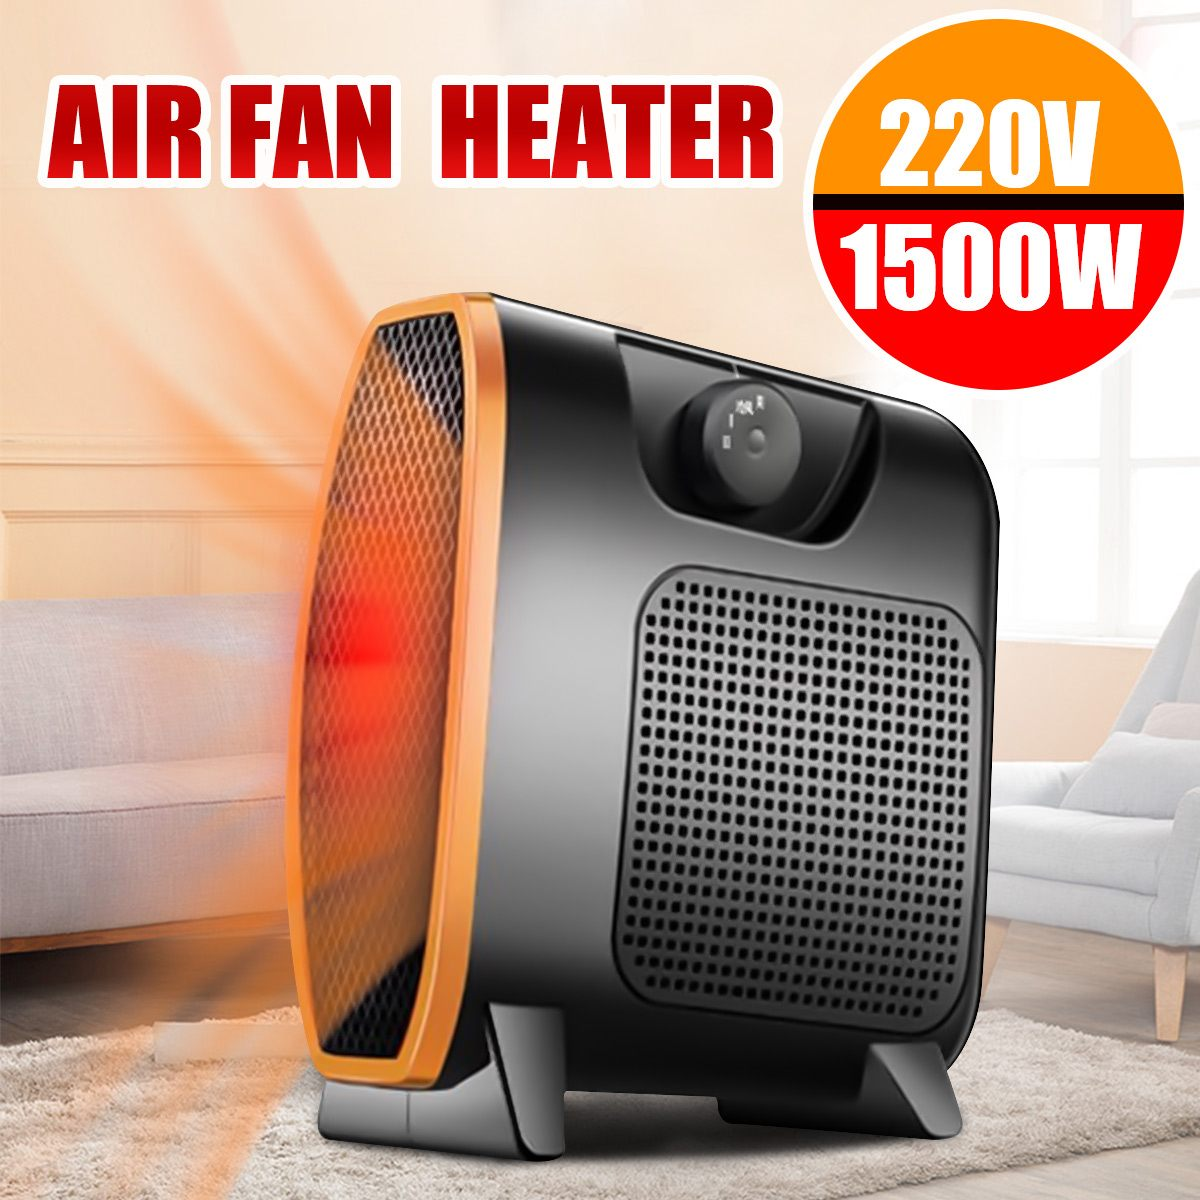 220V 1500W Heater Portable Mini Electric Heater Electric Home Heater Fan Handy Air Warmer Silent Home Office Handy Heater